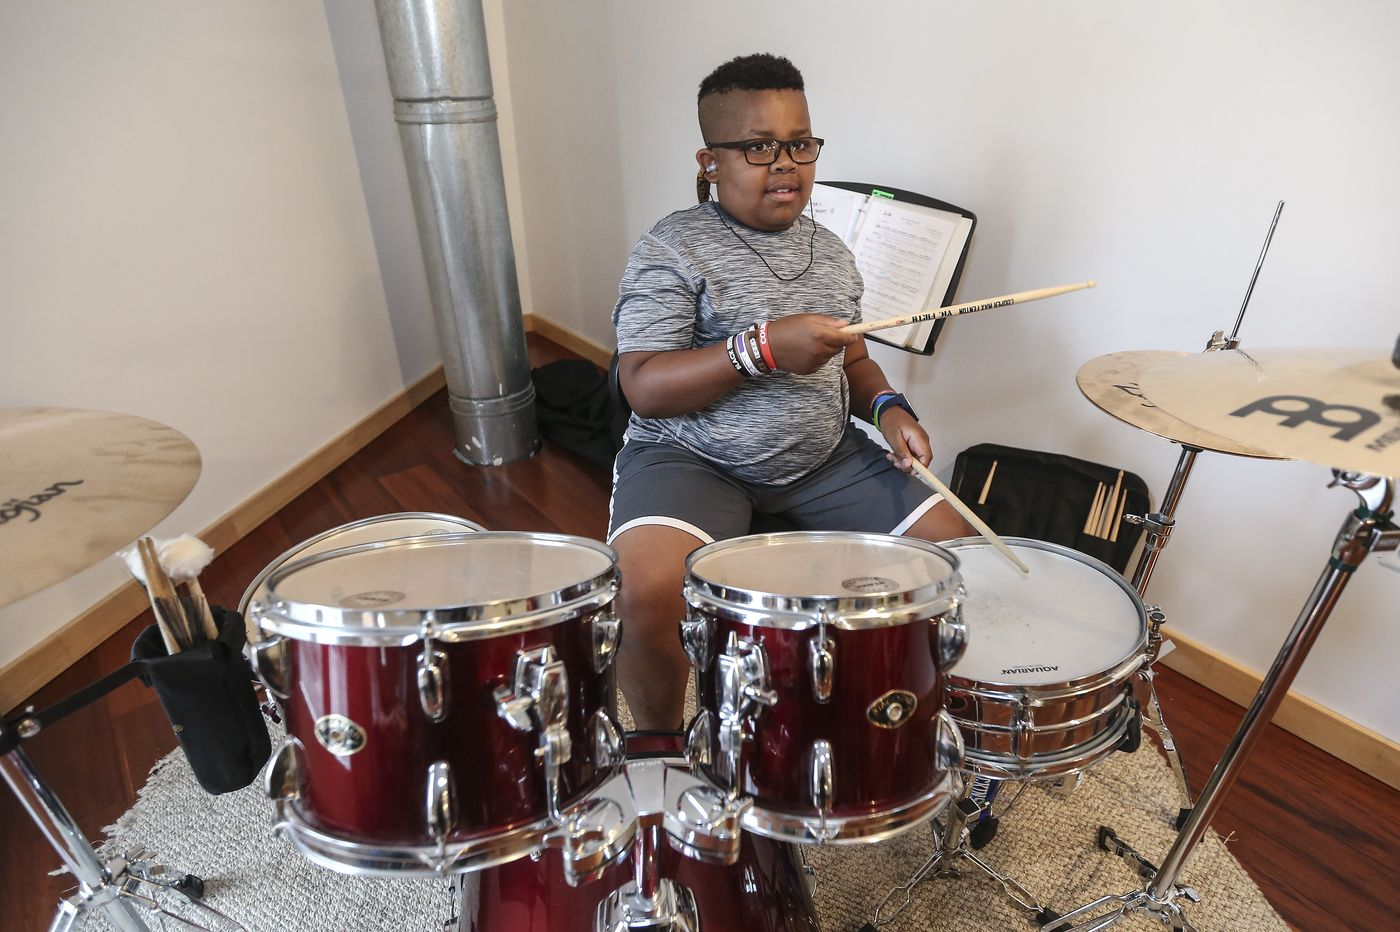 Shakespeare in Clark Park goes glam-rock this year, with a local prodigy on drums